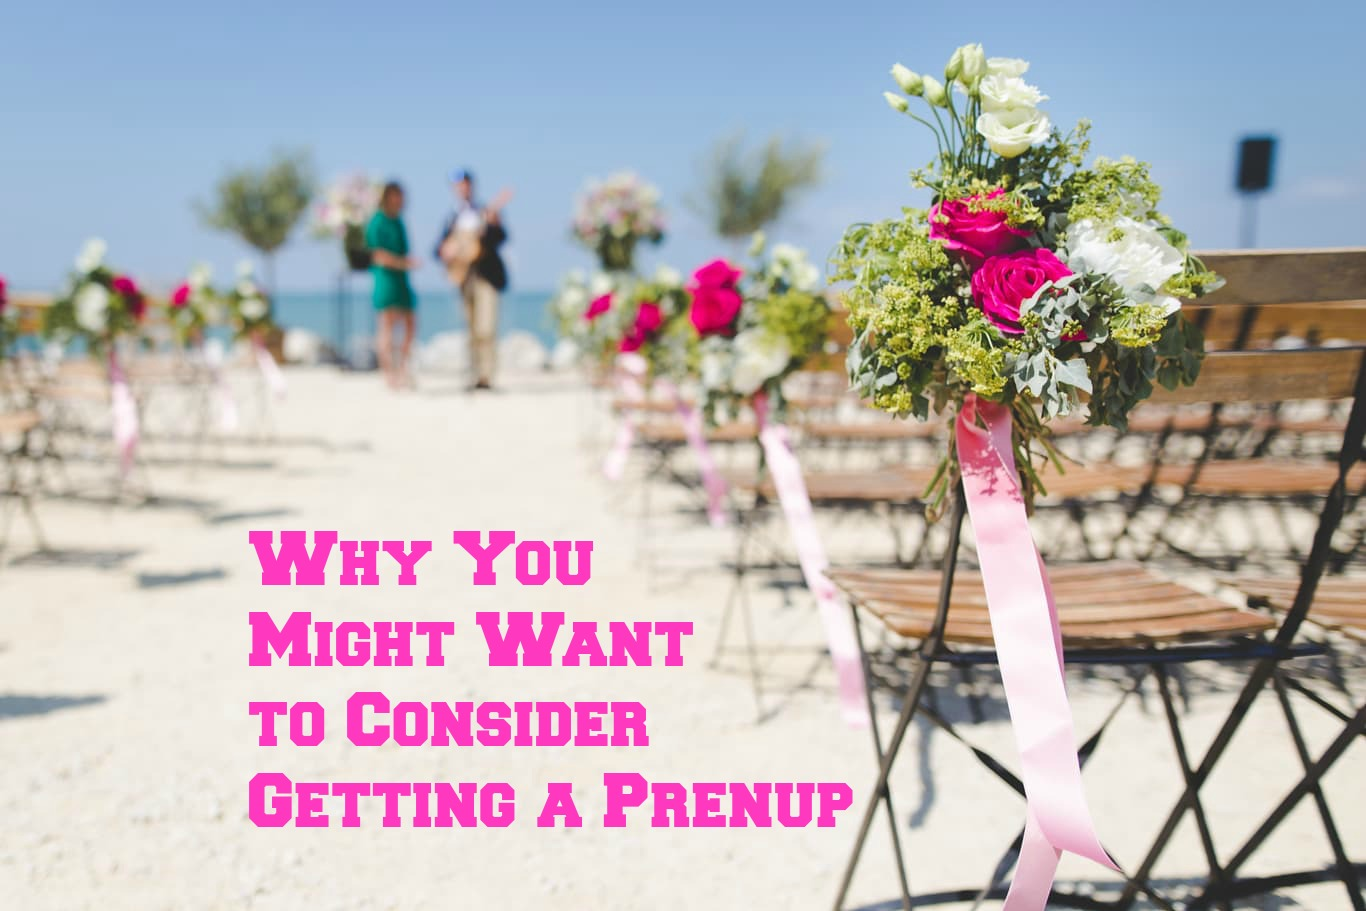 Why You Might Want to Consider Getting a Prenup